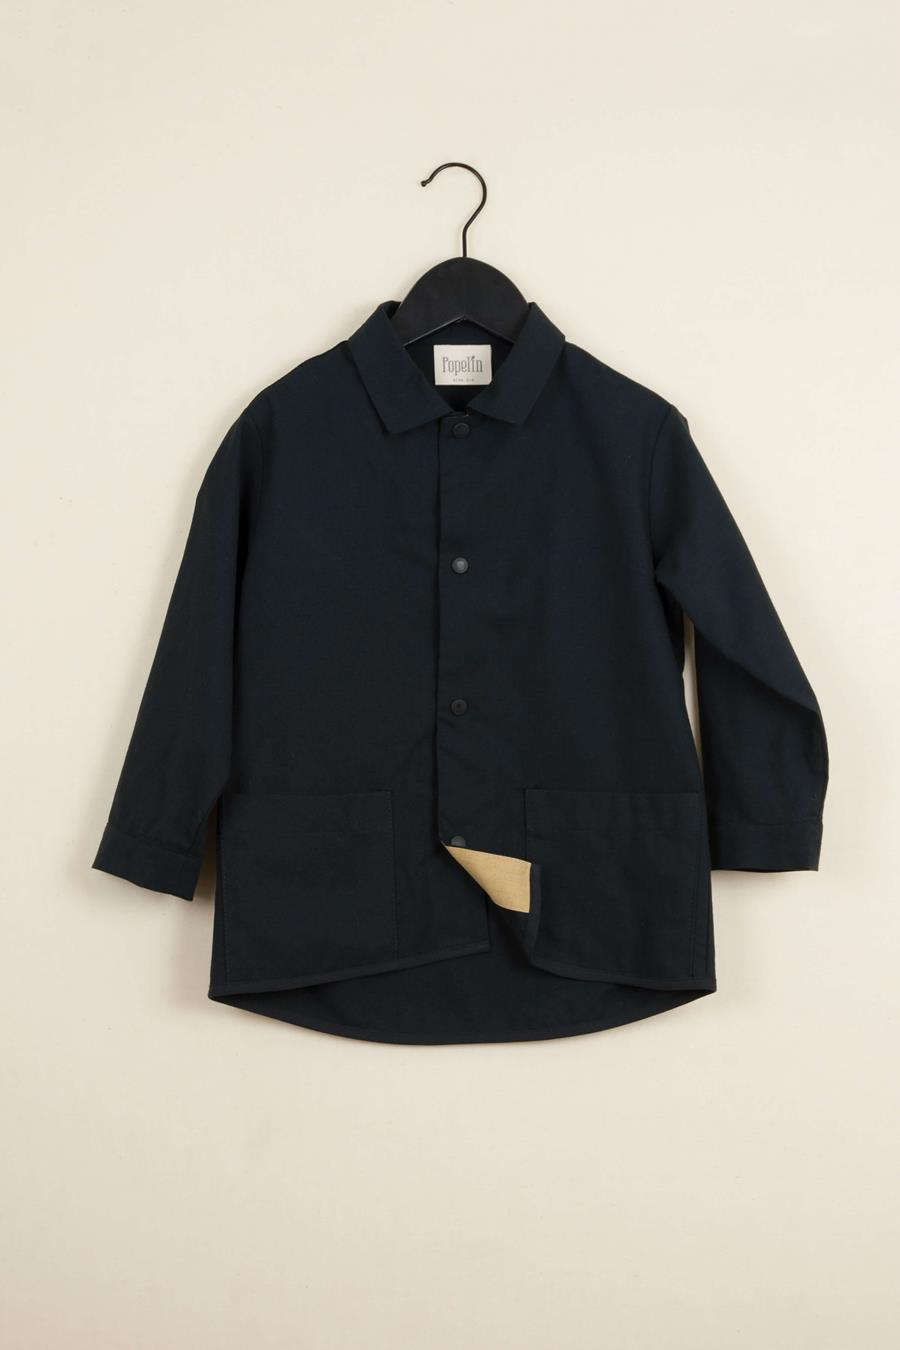 Mod.13.5 Black shirt with pockets | AW19.20.Mod.13.5 Black shirt with pockets